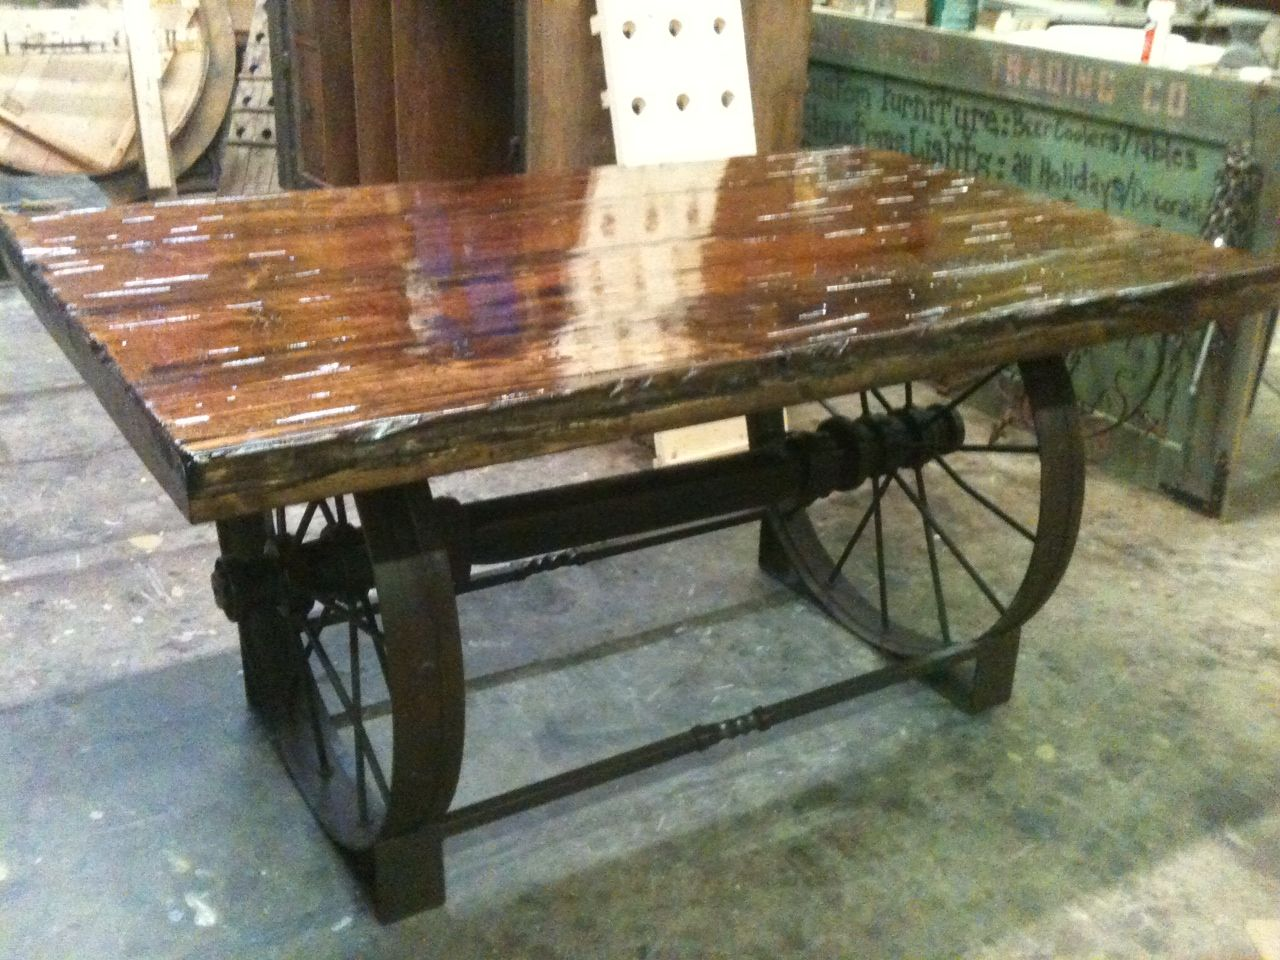 Merveilleux Metal Wagon Wheel Table   Google Search Wagon Wheel Table, Wagon Wheel  Decor, Metal